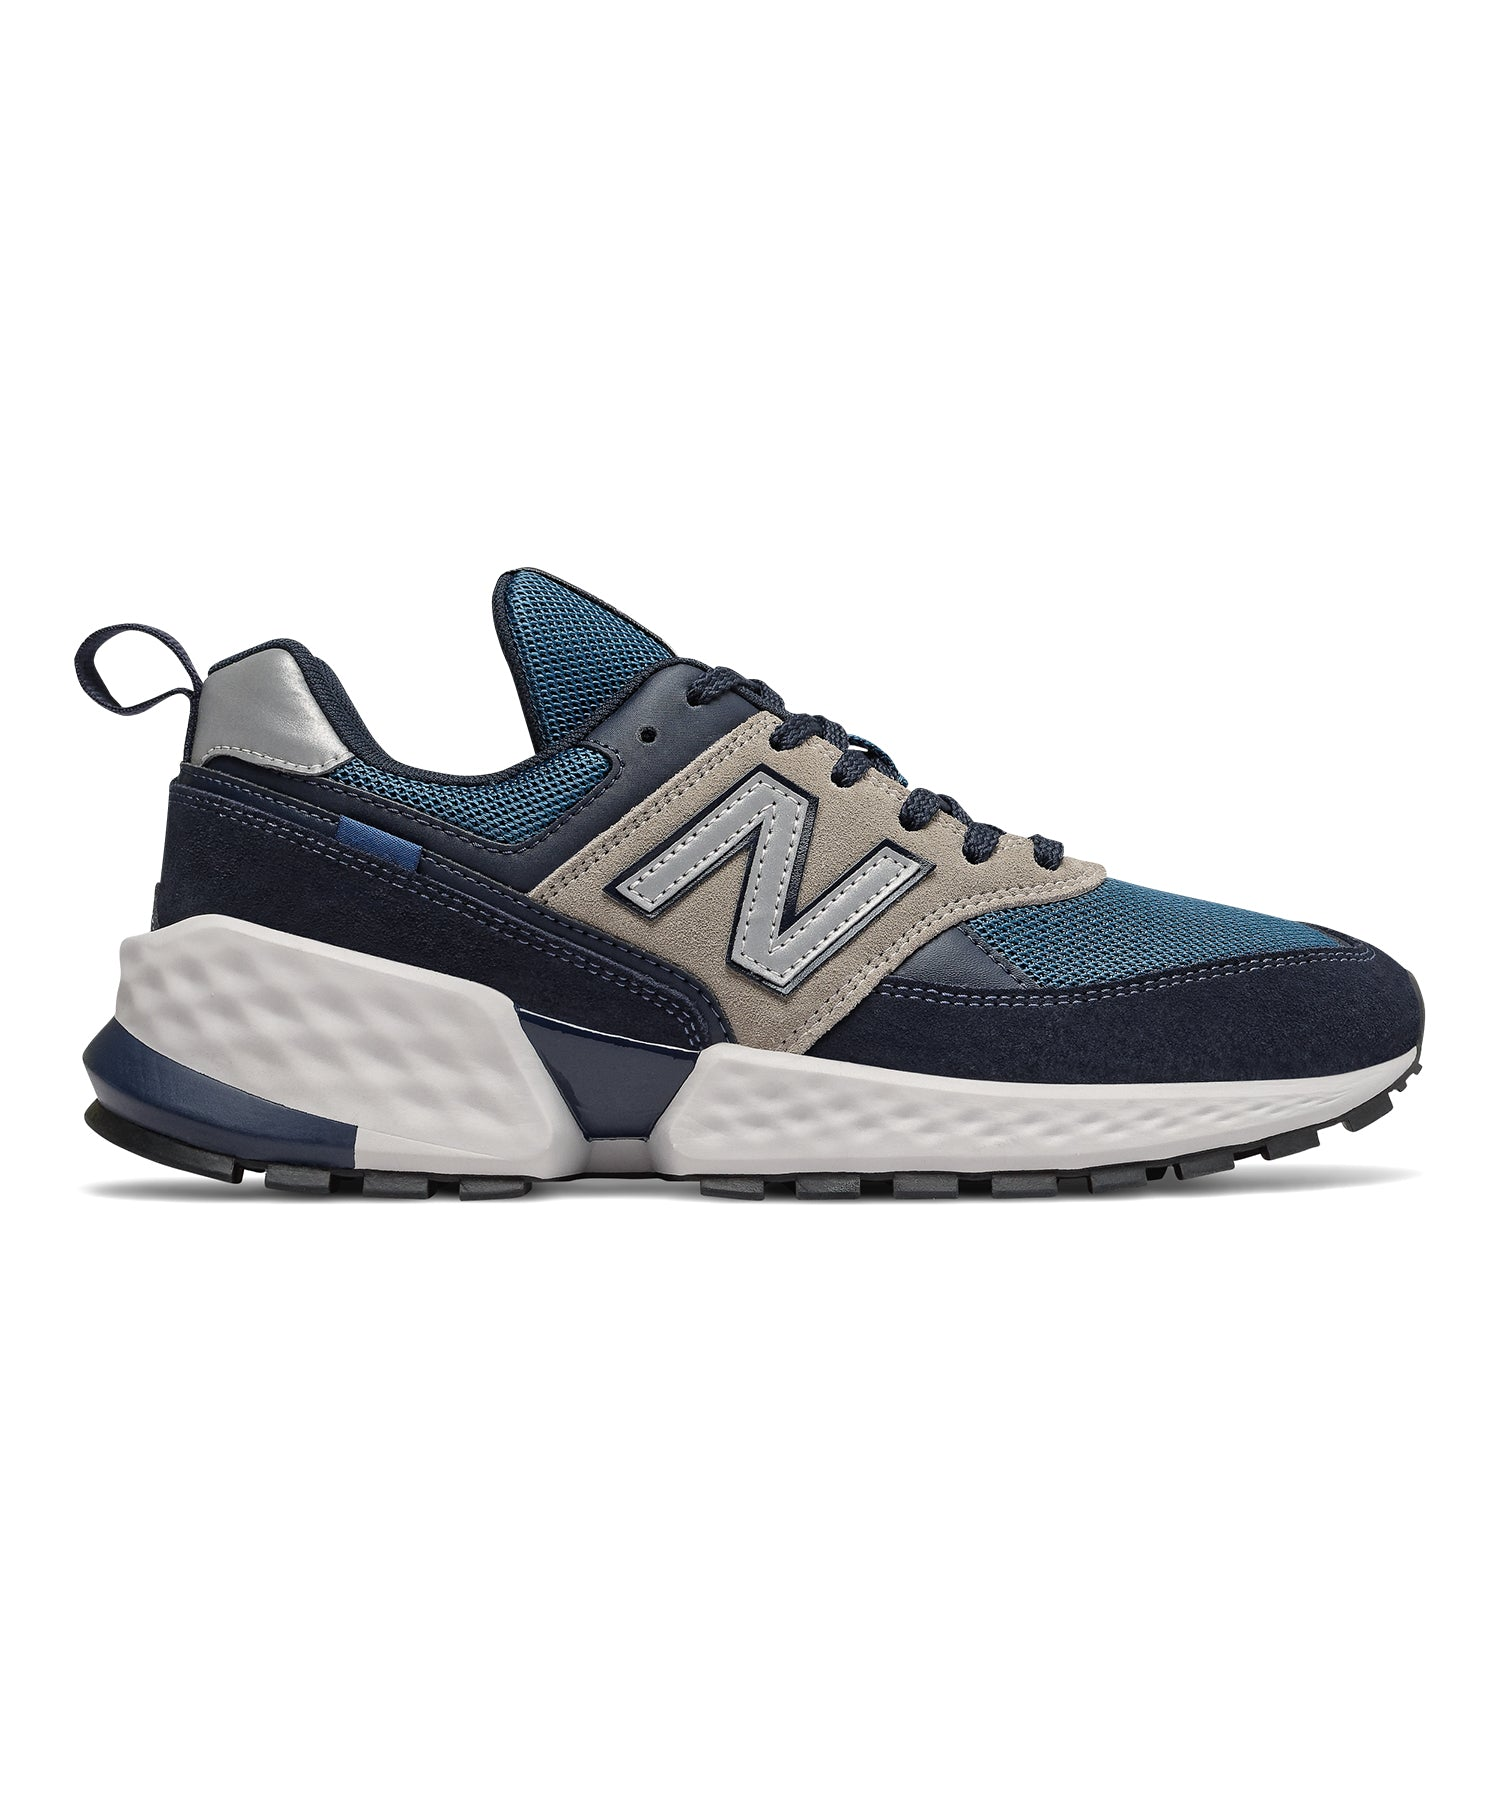 New Balance 574 Sport in Navy